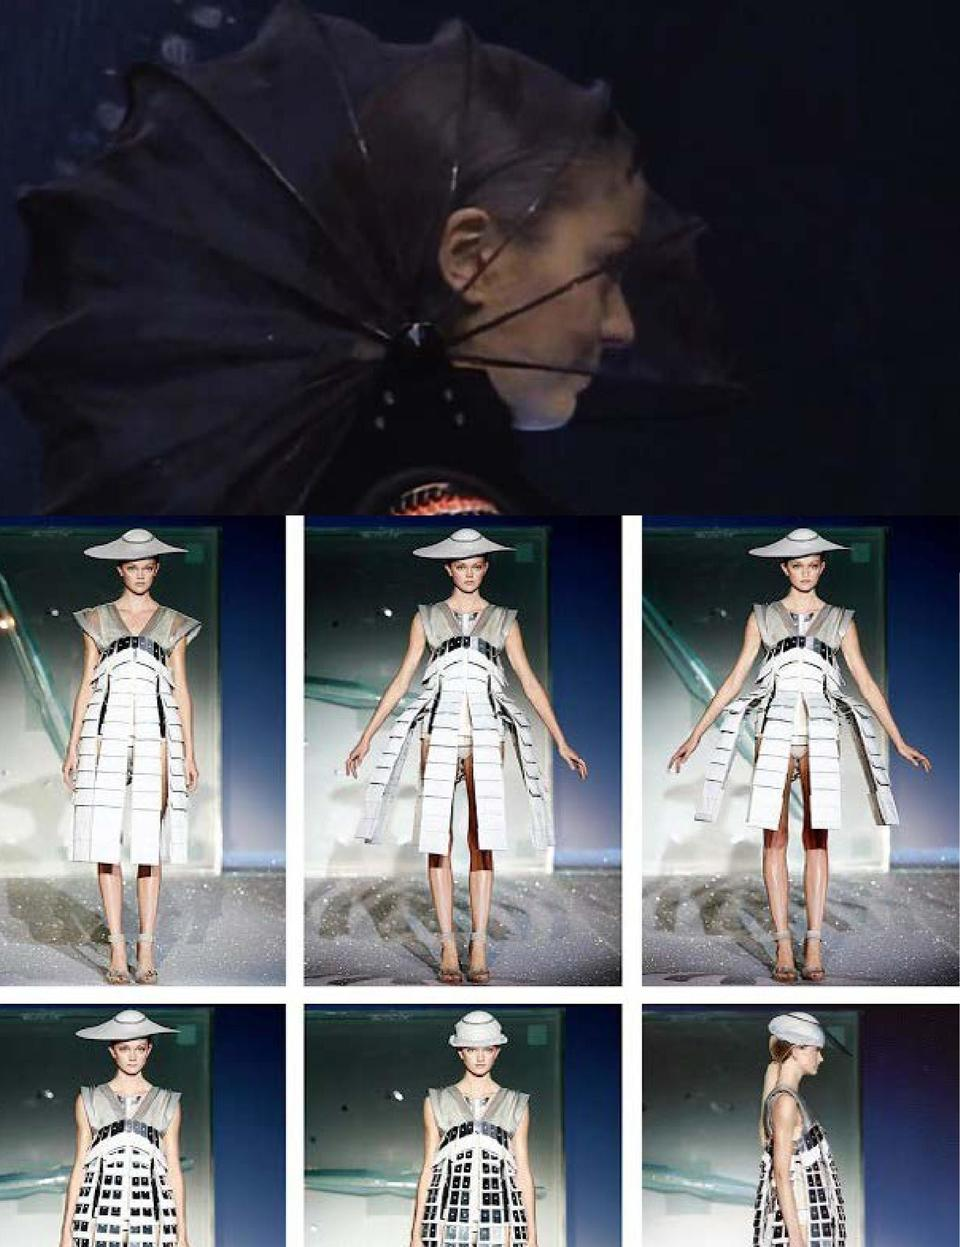 THE ARTISTS WHICH HAVE A HIGHER INSPIRATION ON ME LEADING TO MAKE THIS COLLECTION IS HUSSEIN CHALAYAN WHO IS KNOWN AS FASH...